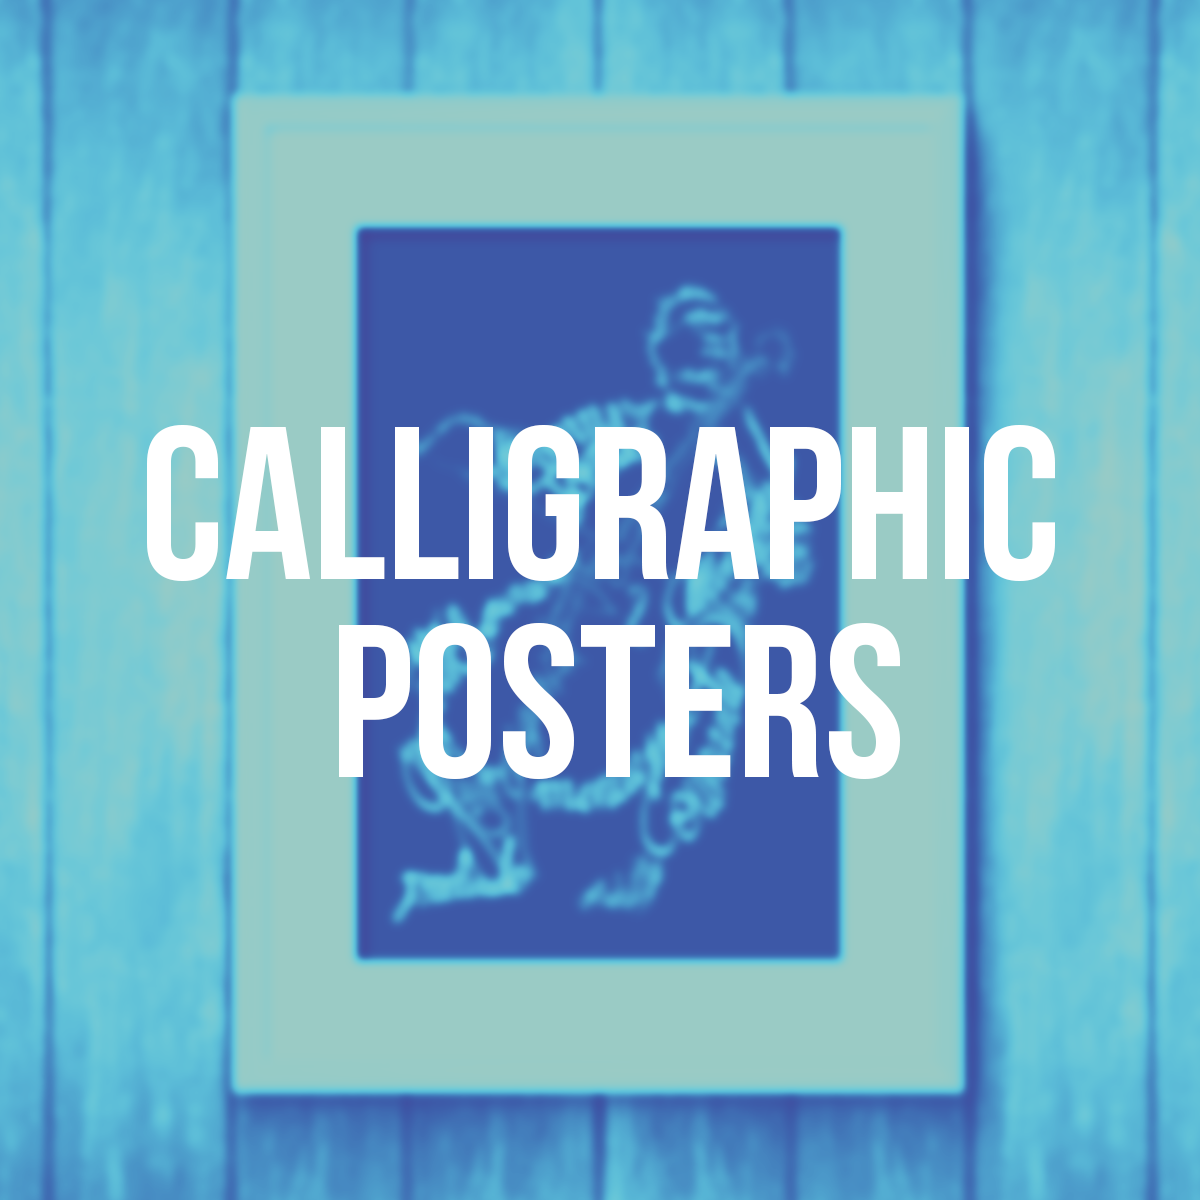 Caligraphic Posters - Calligraphy / Print